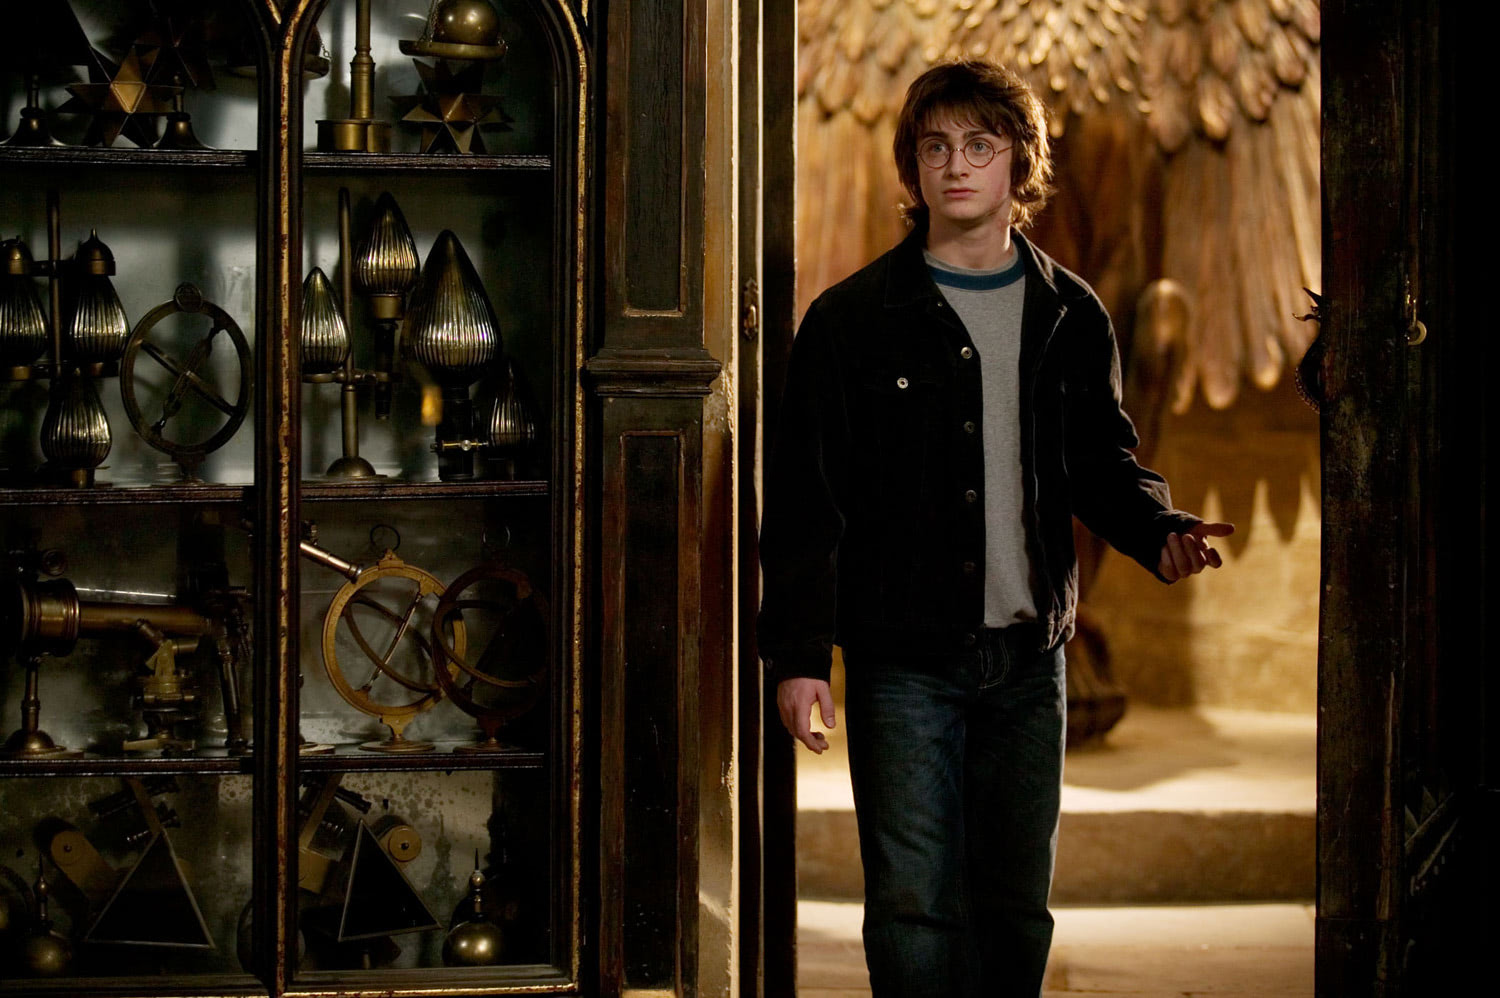 Harry enters Dumbledore's office